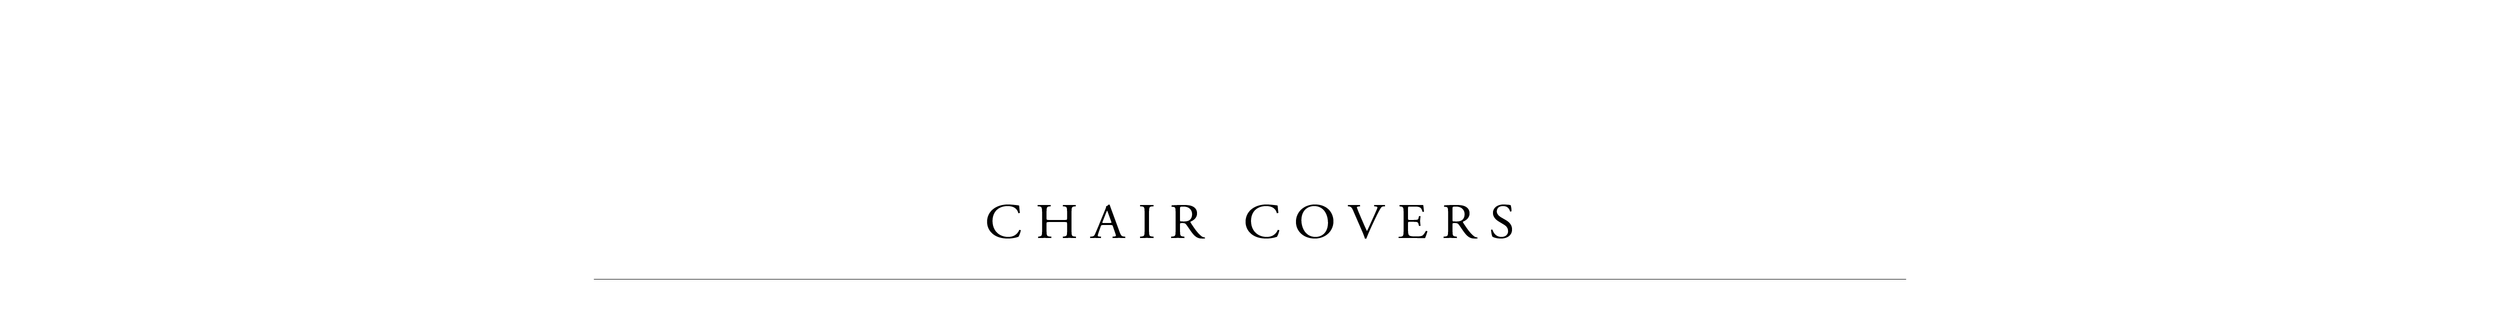 chair covers.png